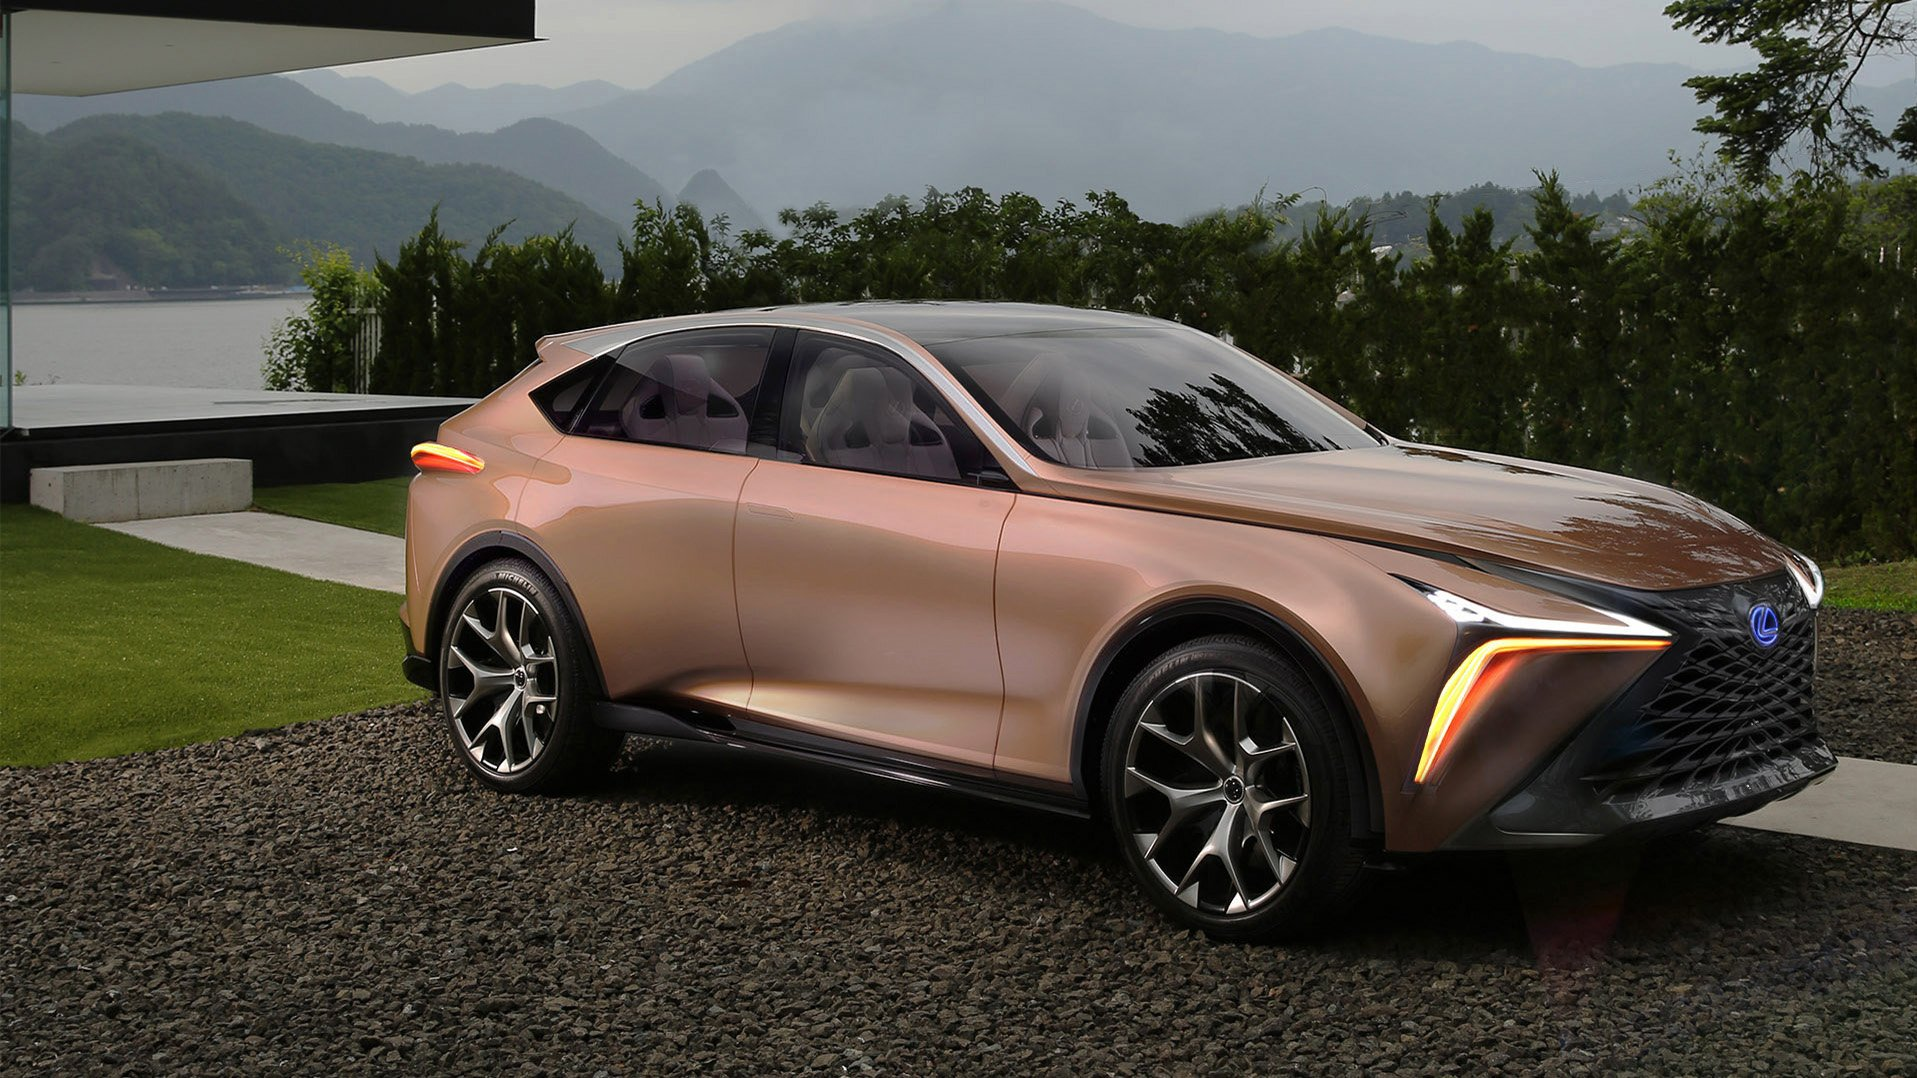 Lexus Of Rockford >> Lexus Of Rockford On Twitter This Is What The Future Looks